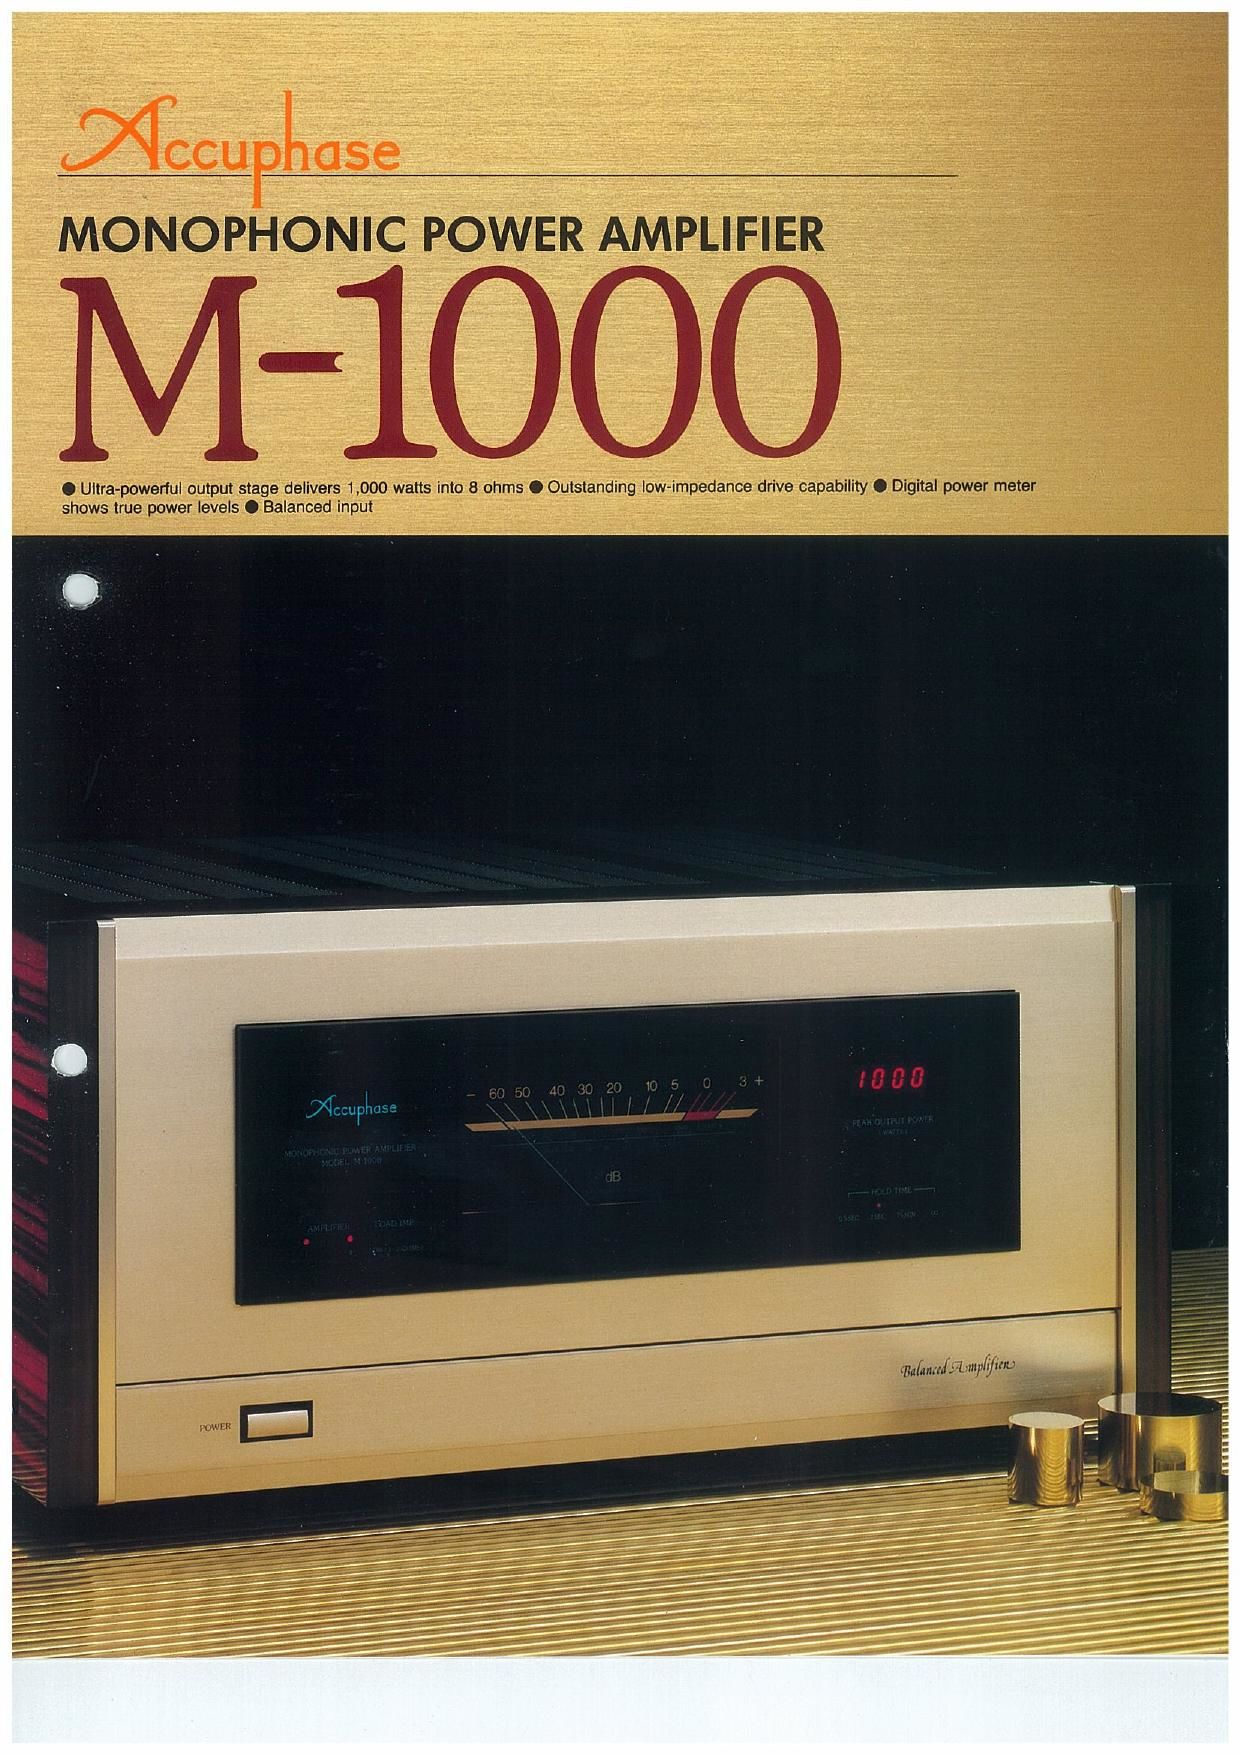 Accuphase M 1000 Brochure